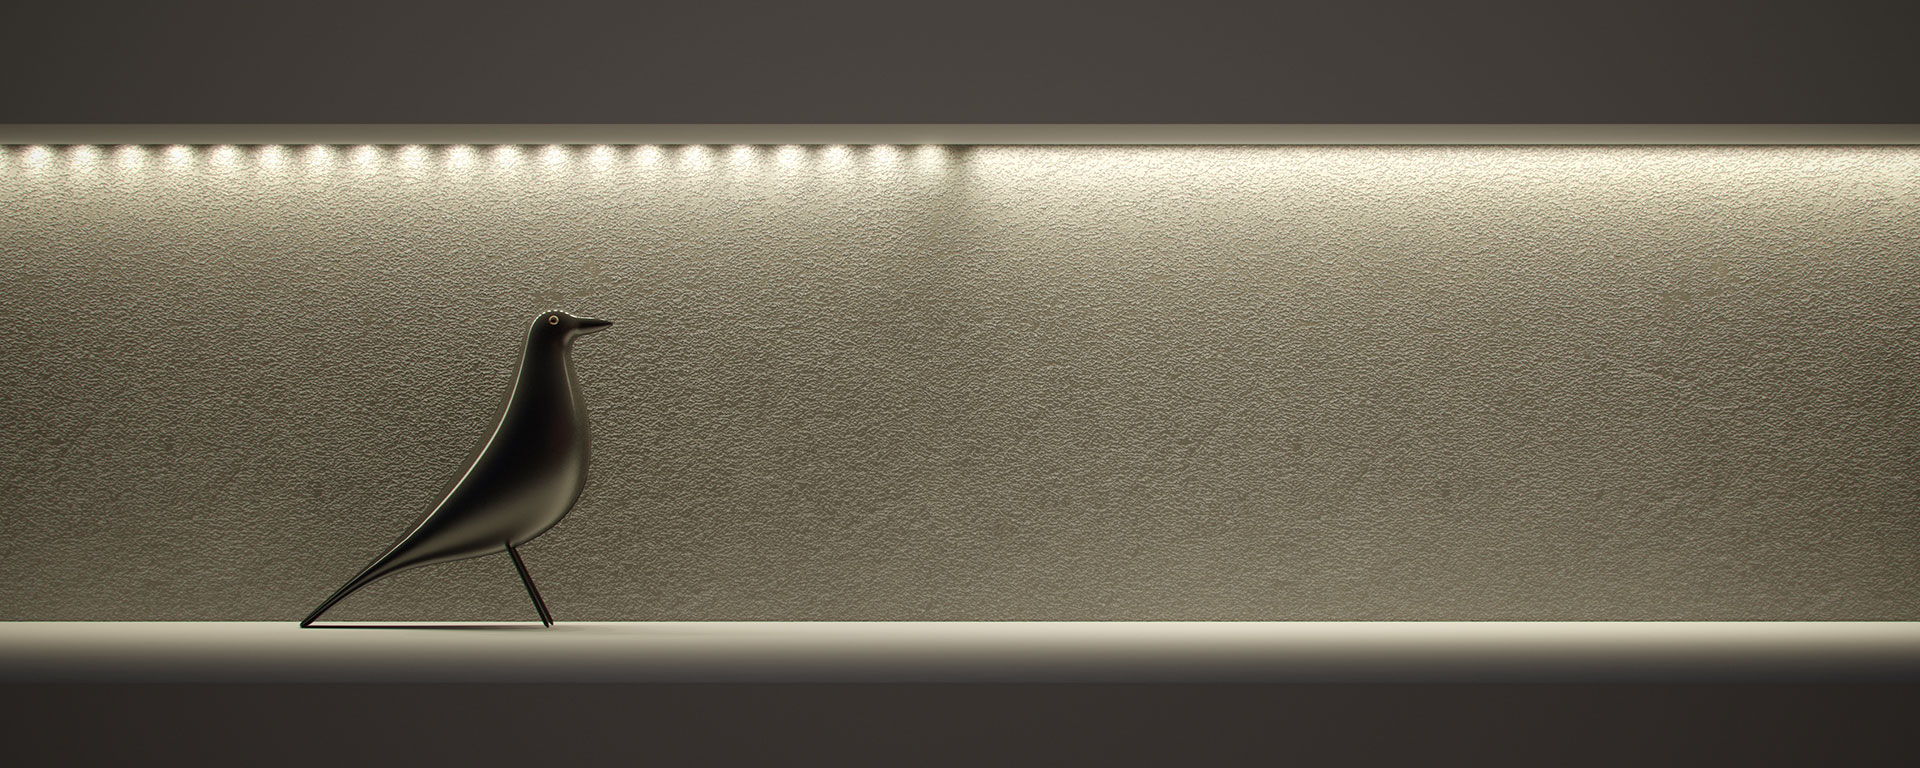 Electro is offered in various configurations, and uniform glow, a completely uniform diffuser with no visible scalloping on the diffuser or the illuminated surface.